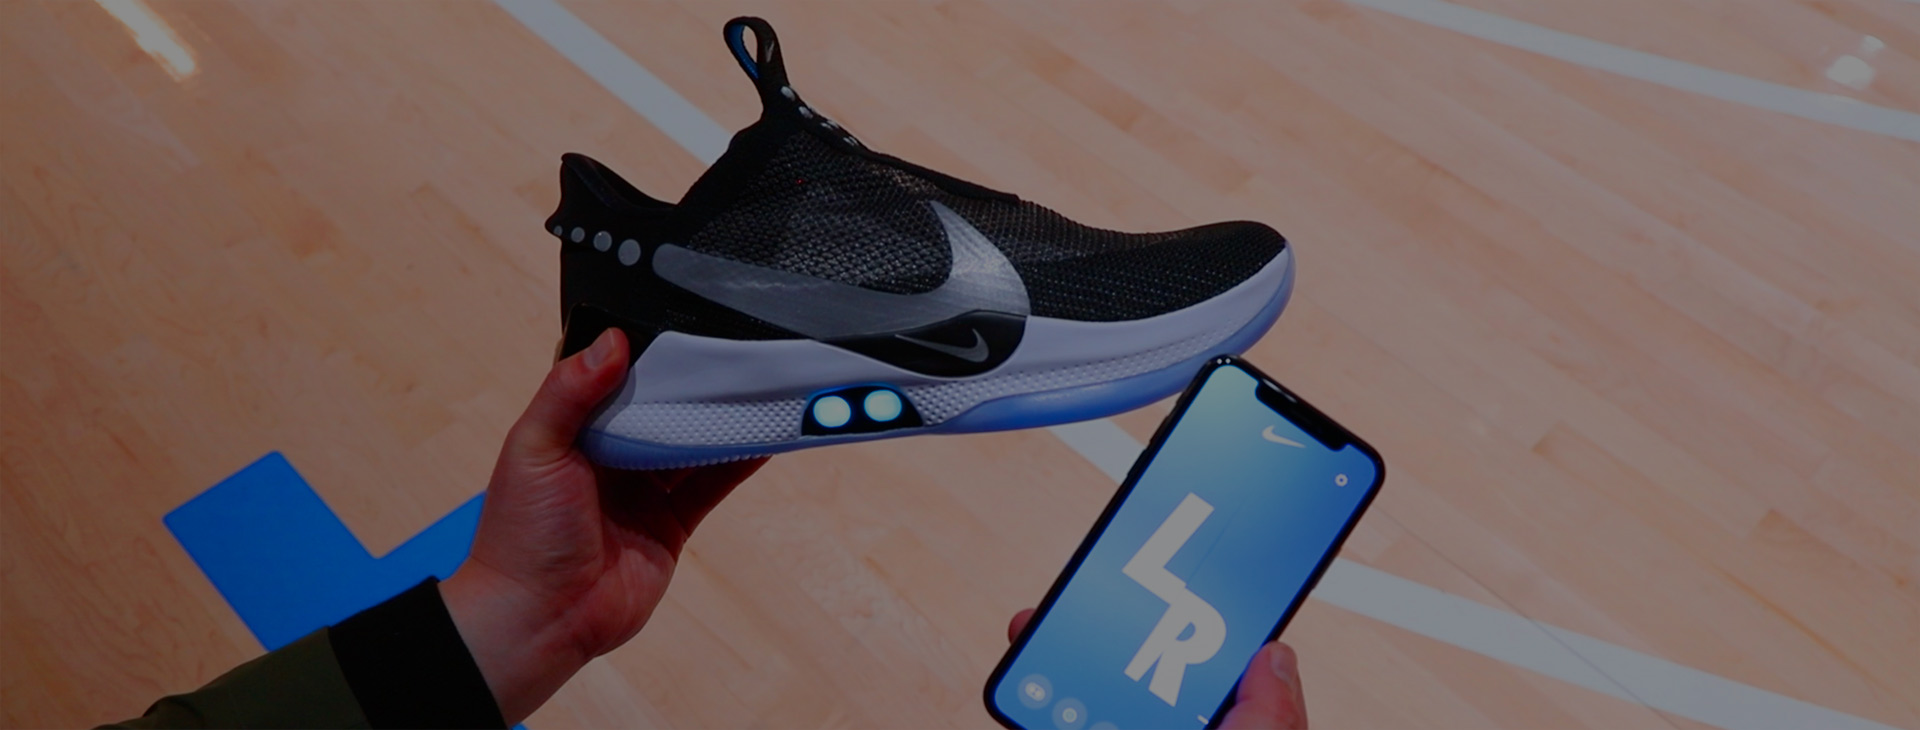 5ef9a4f4c91aa Nike Does Wearable Technology Right With The Adapt BB